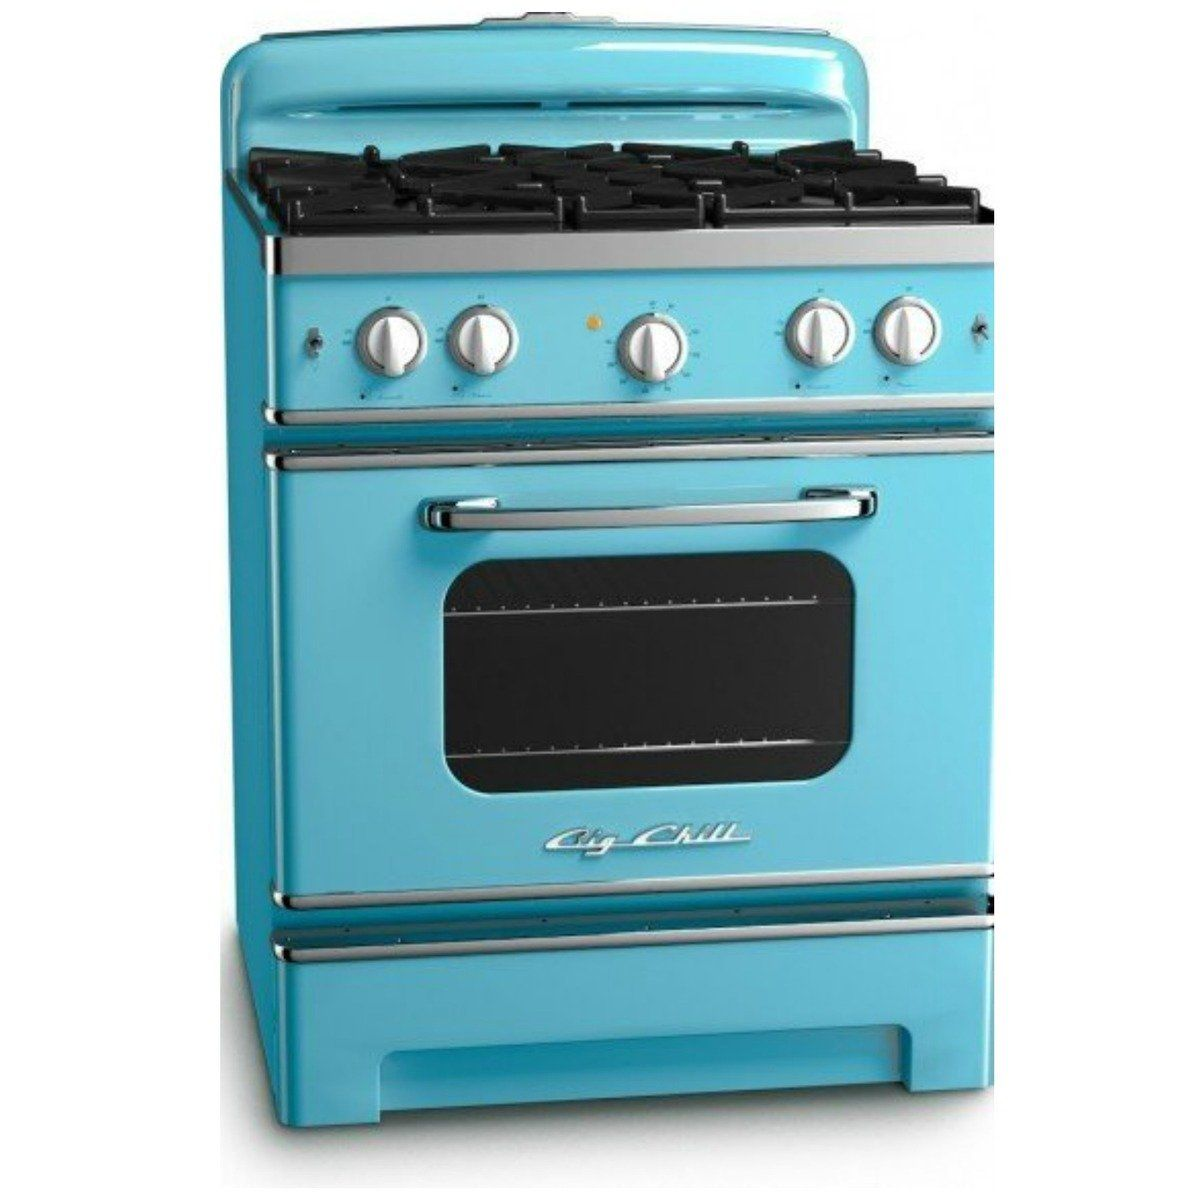 Retro Kitchen Stoves Charcoal Cabinets Such Amazing Vintage Styling For The Home Pinterest